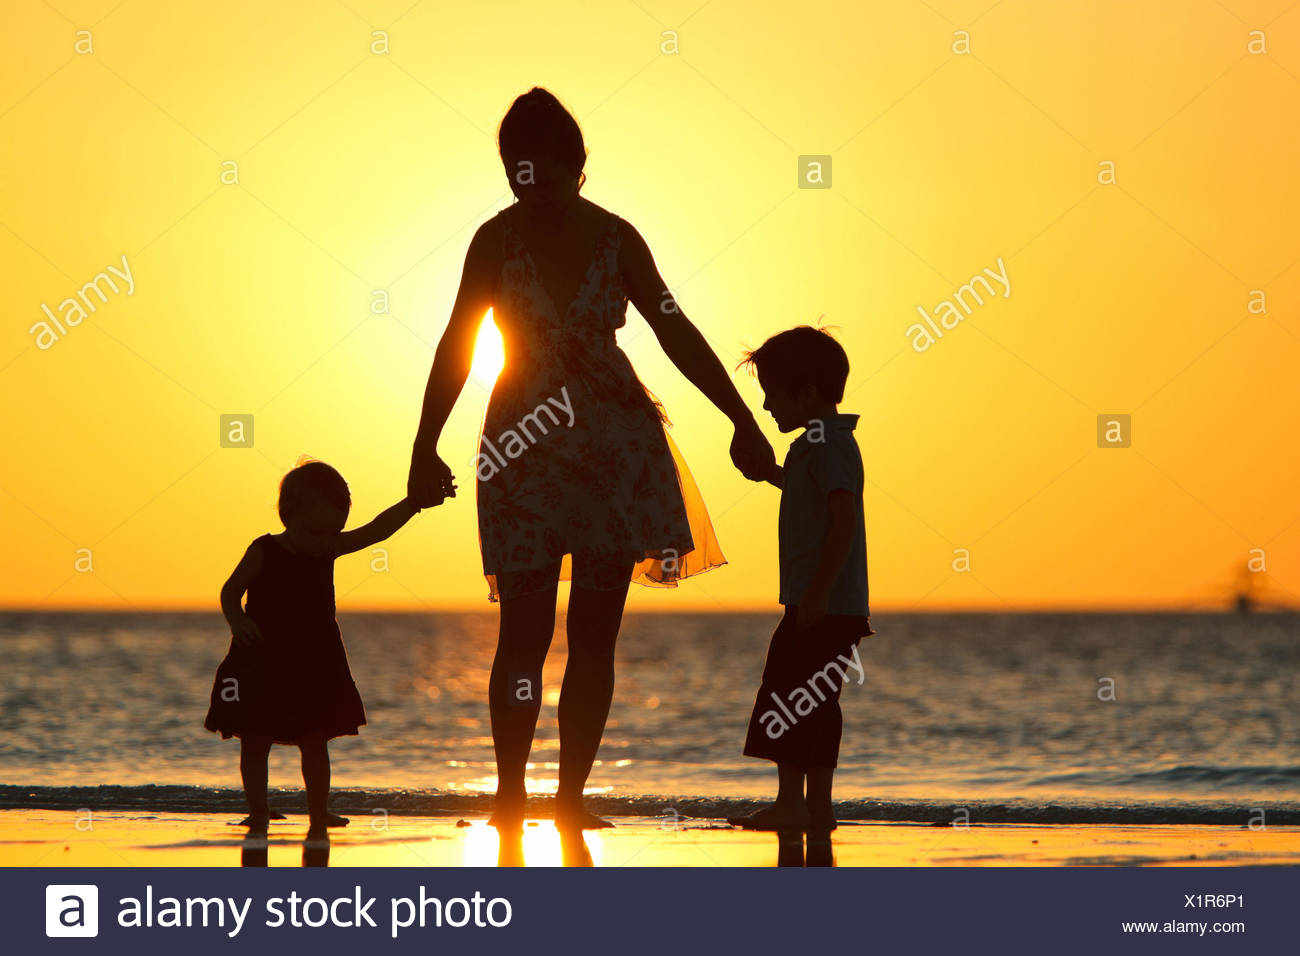 silhouettes of a mother and her two children on beach at sunset - Stock Image